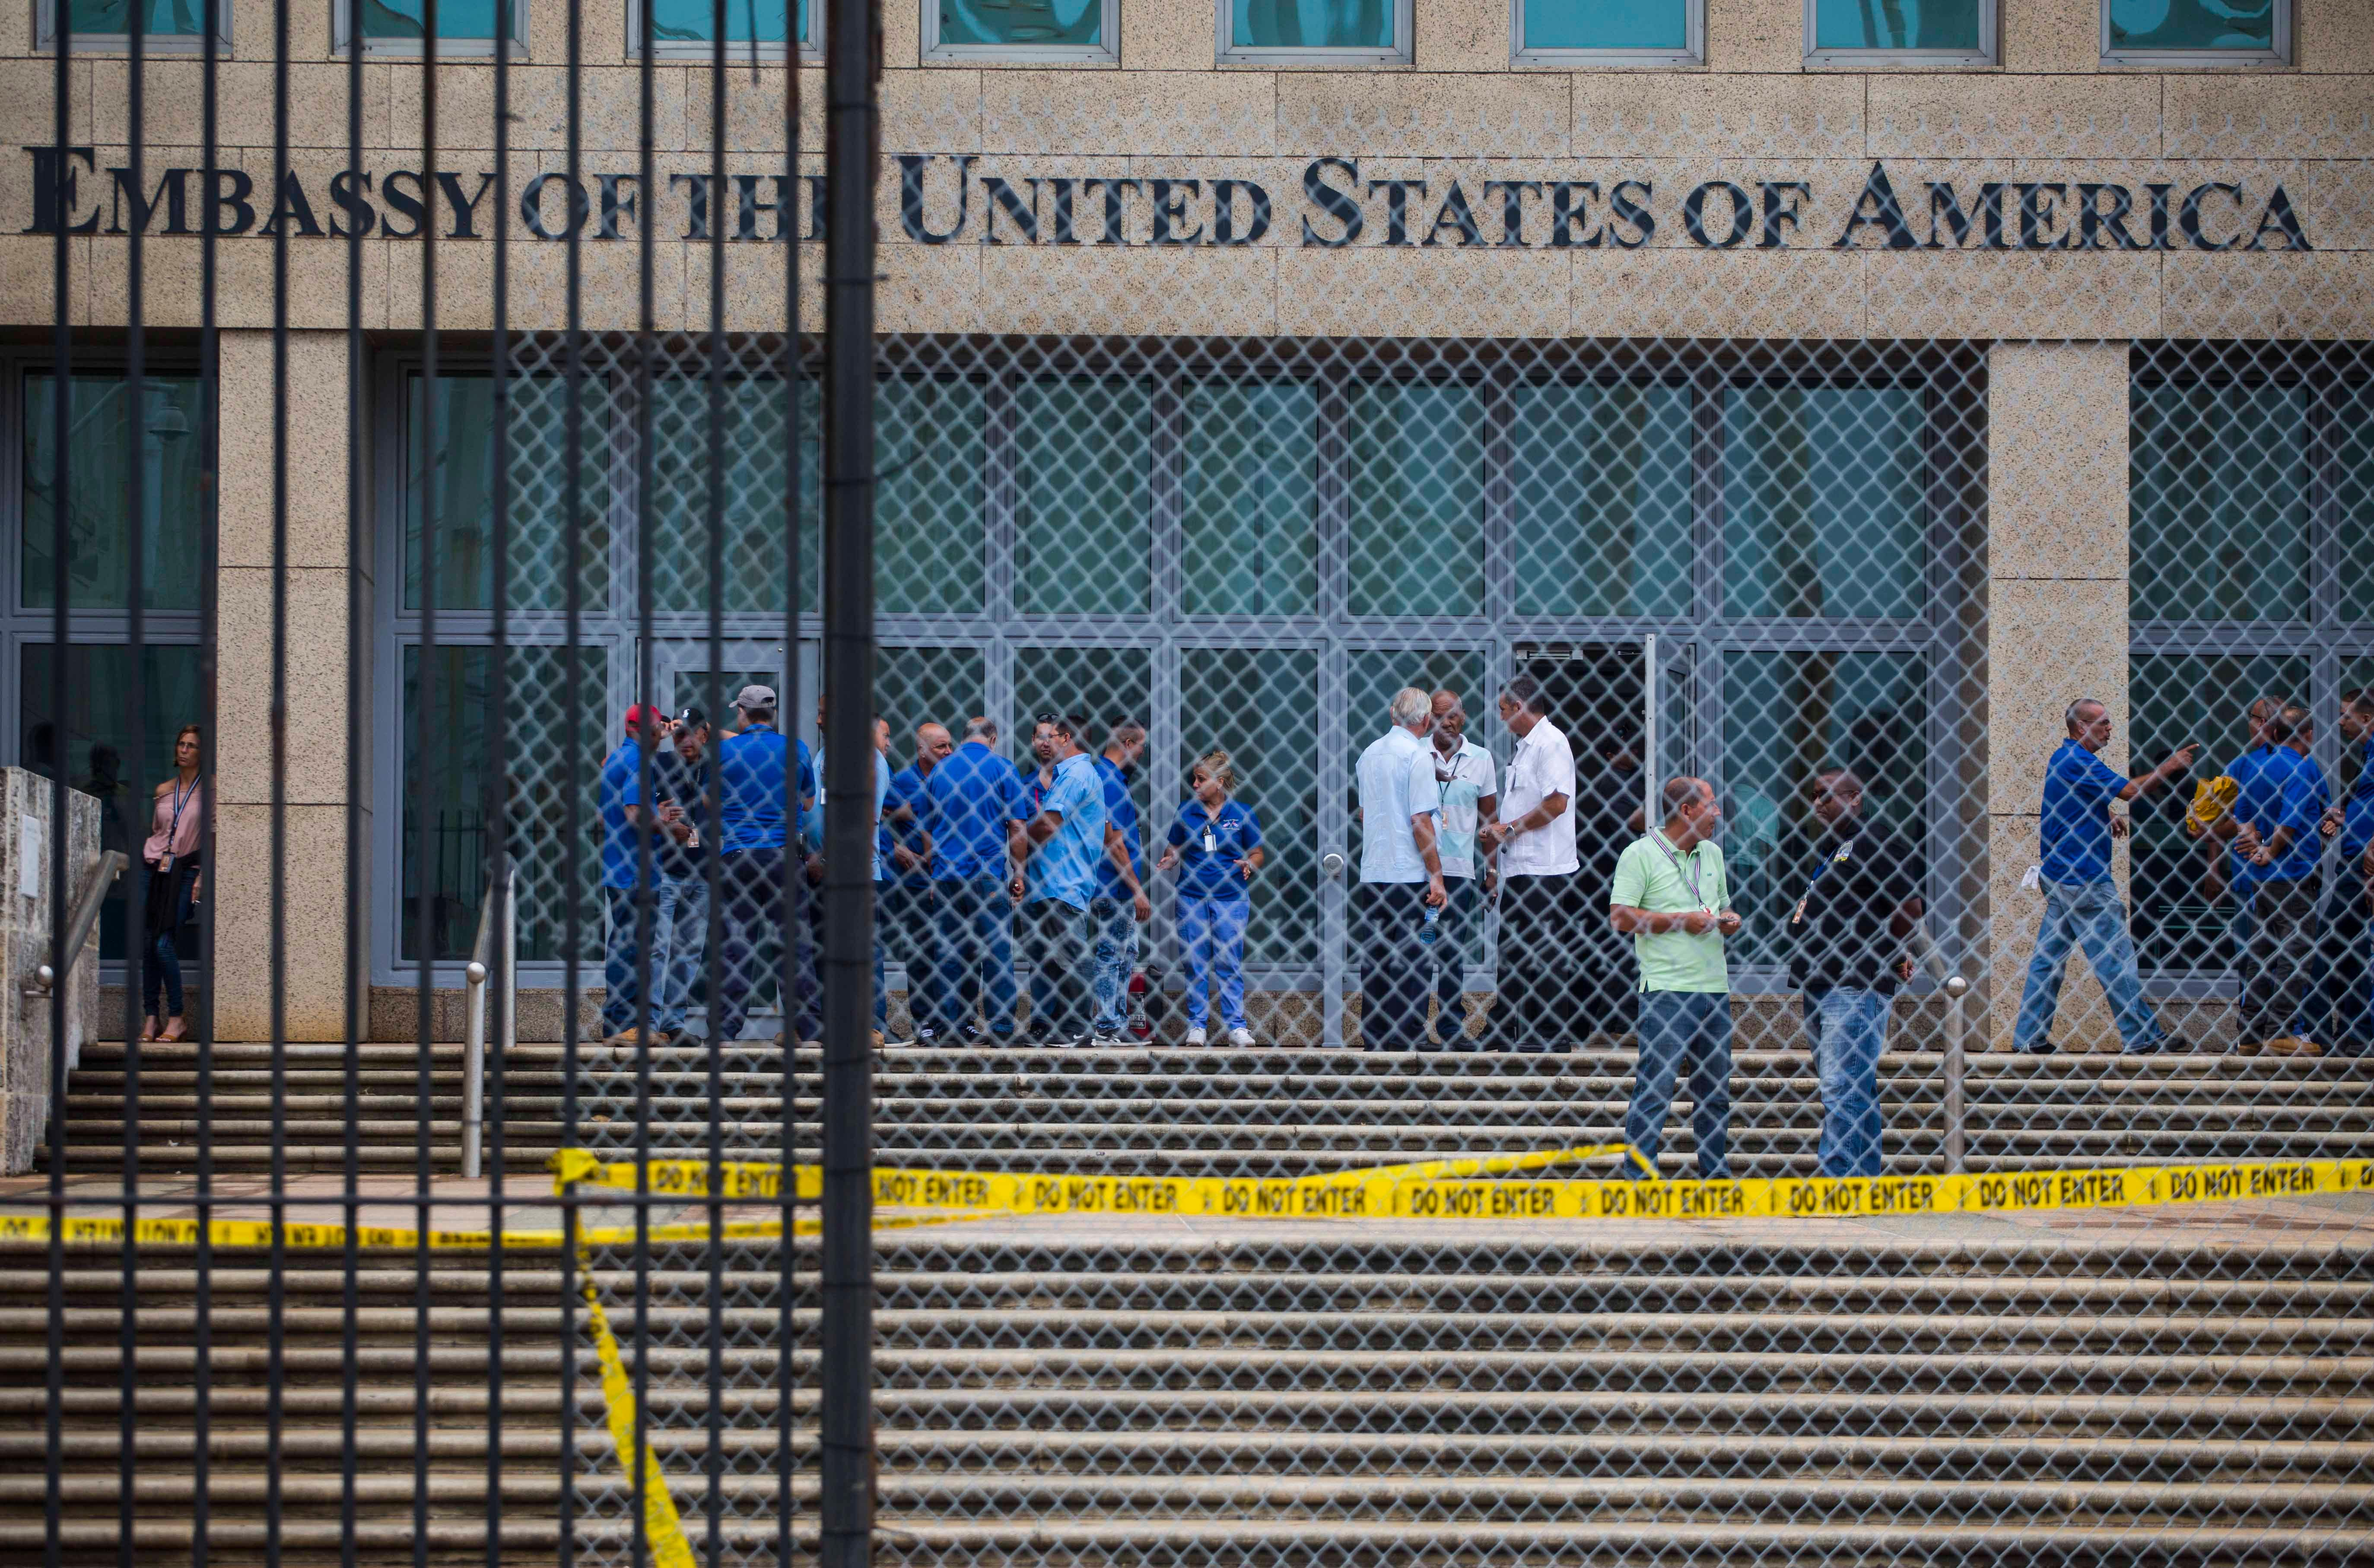 FILE - In a Friday, Sept. 29, 2017 file photo, staff stand within the United States embassy facility in Havana, Cuba. (AP Photo/Desmond Boylan, File)